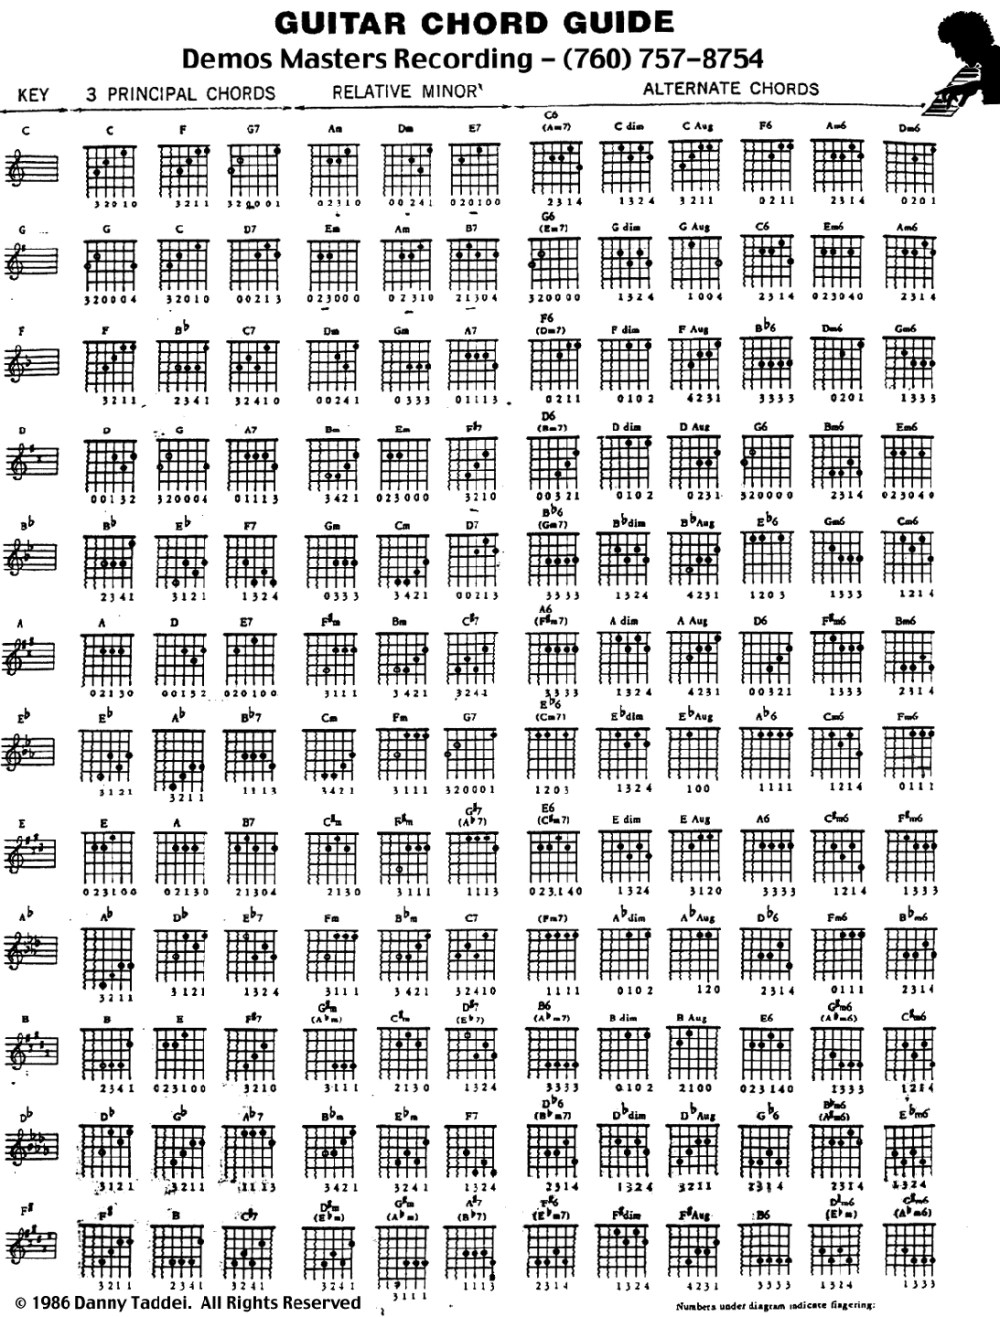 medium resolution of useful poster with chord charts assorted by key ideal for learning what chords are in each key and memorizing chord fingerings